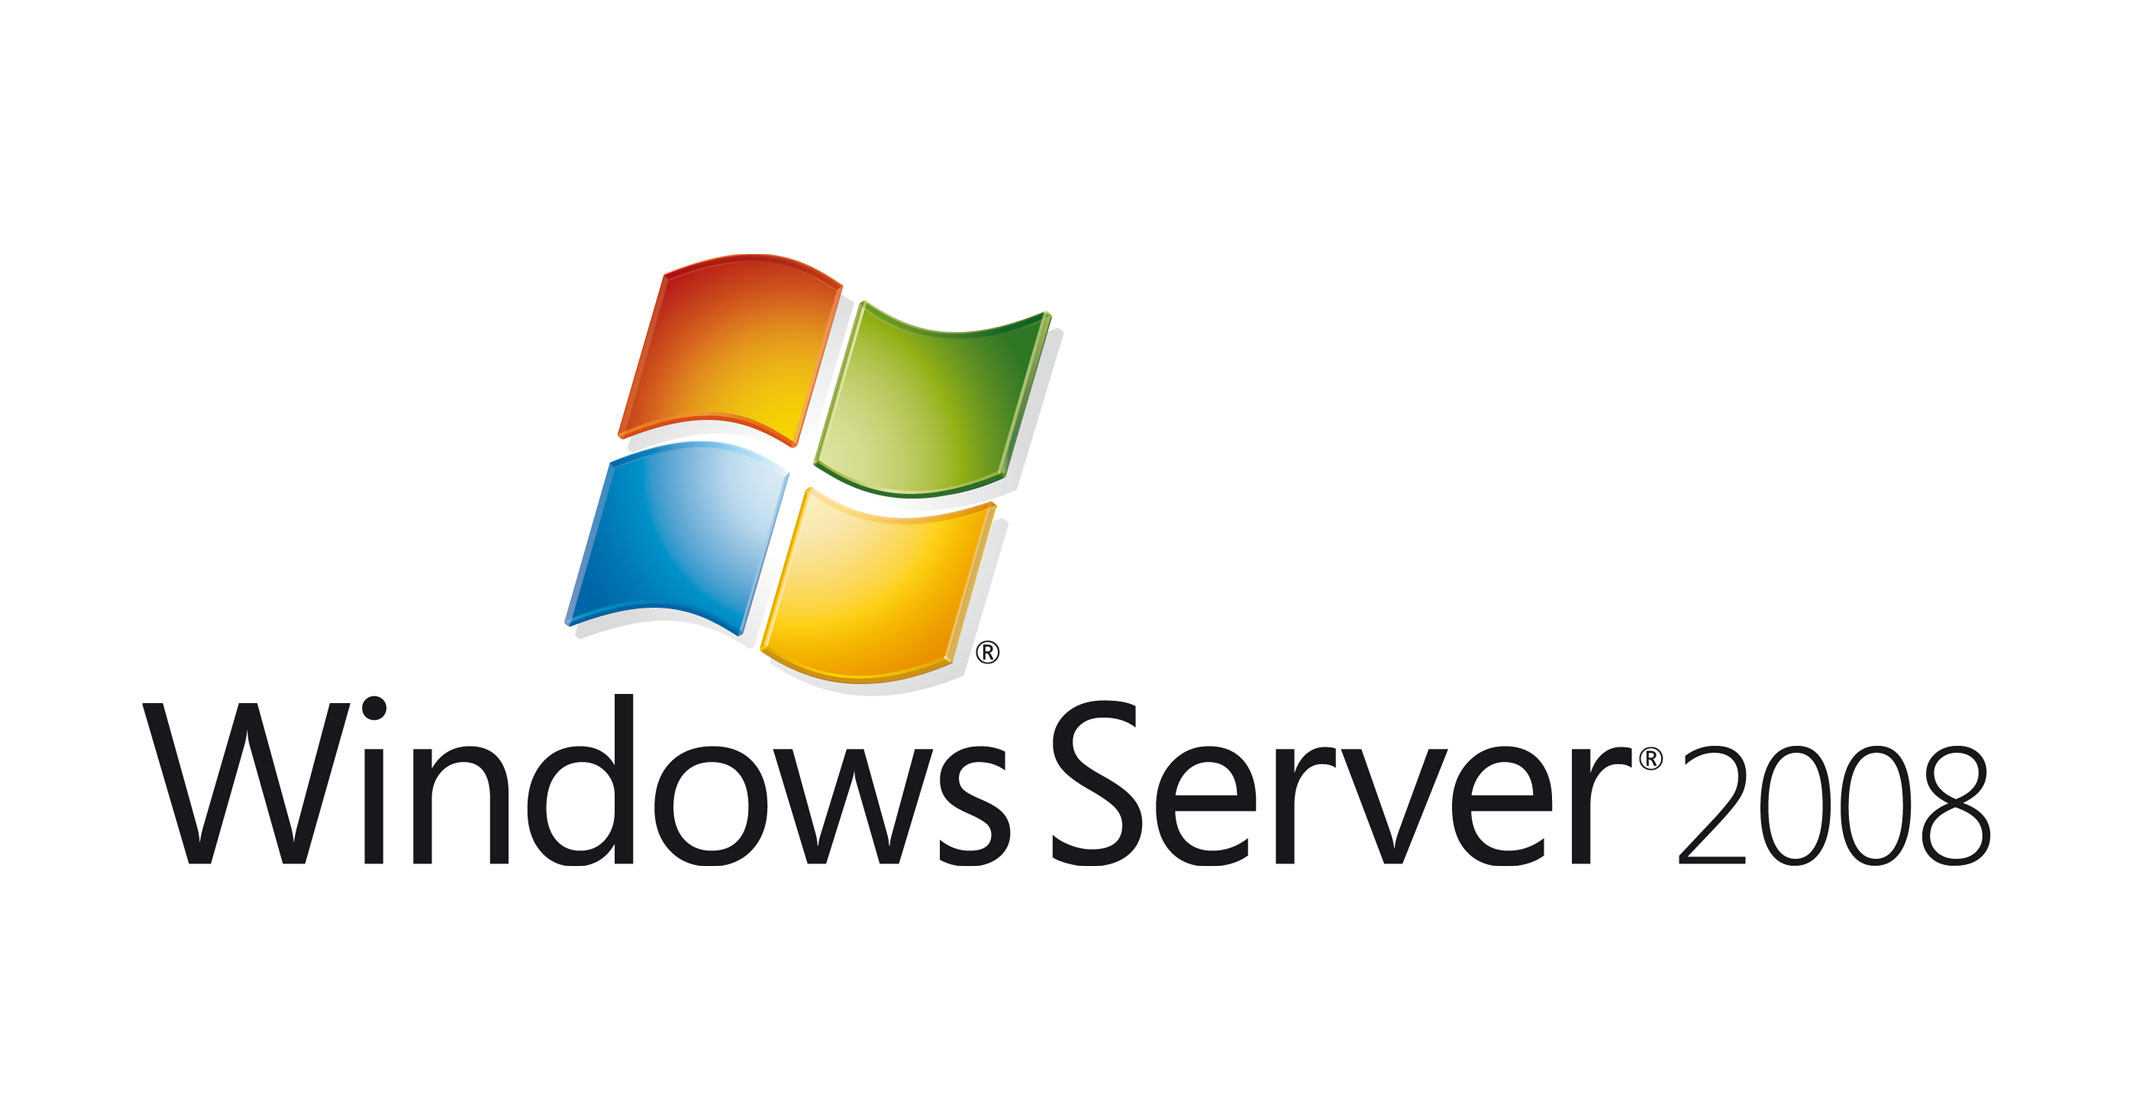 Pinnacle cautions: Windows Server 2008 support ends soon